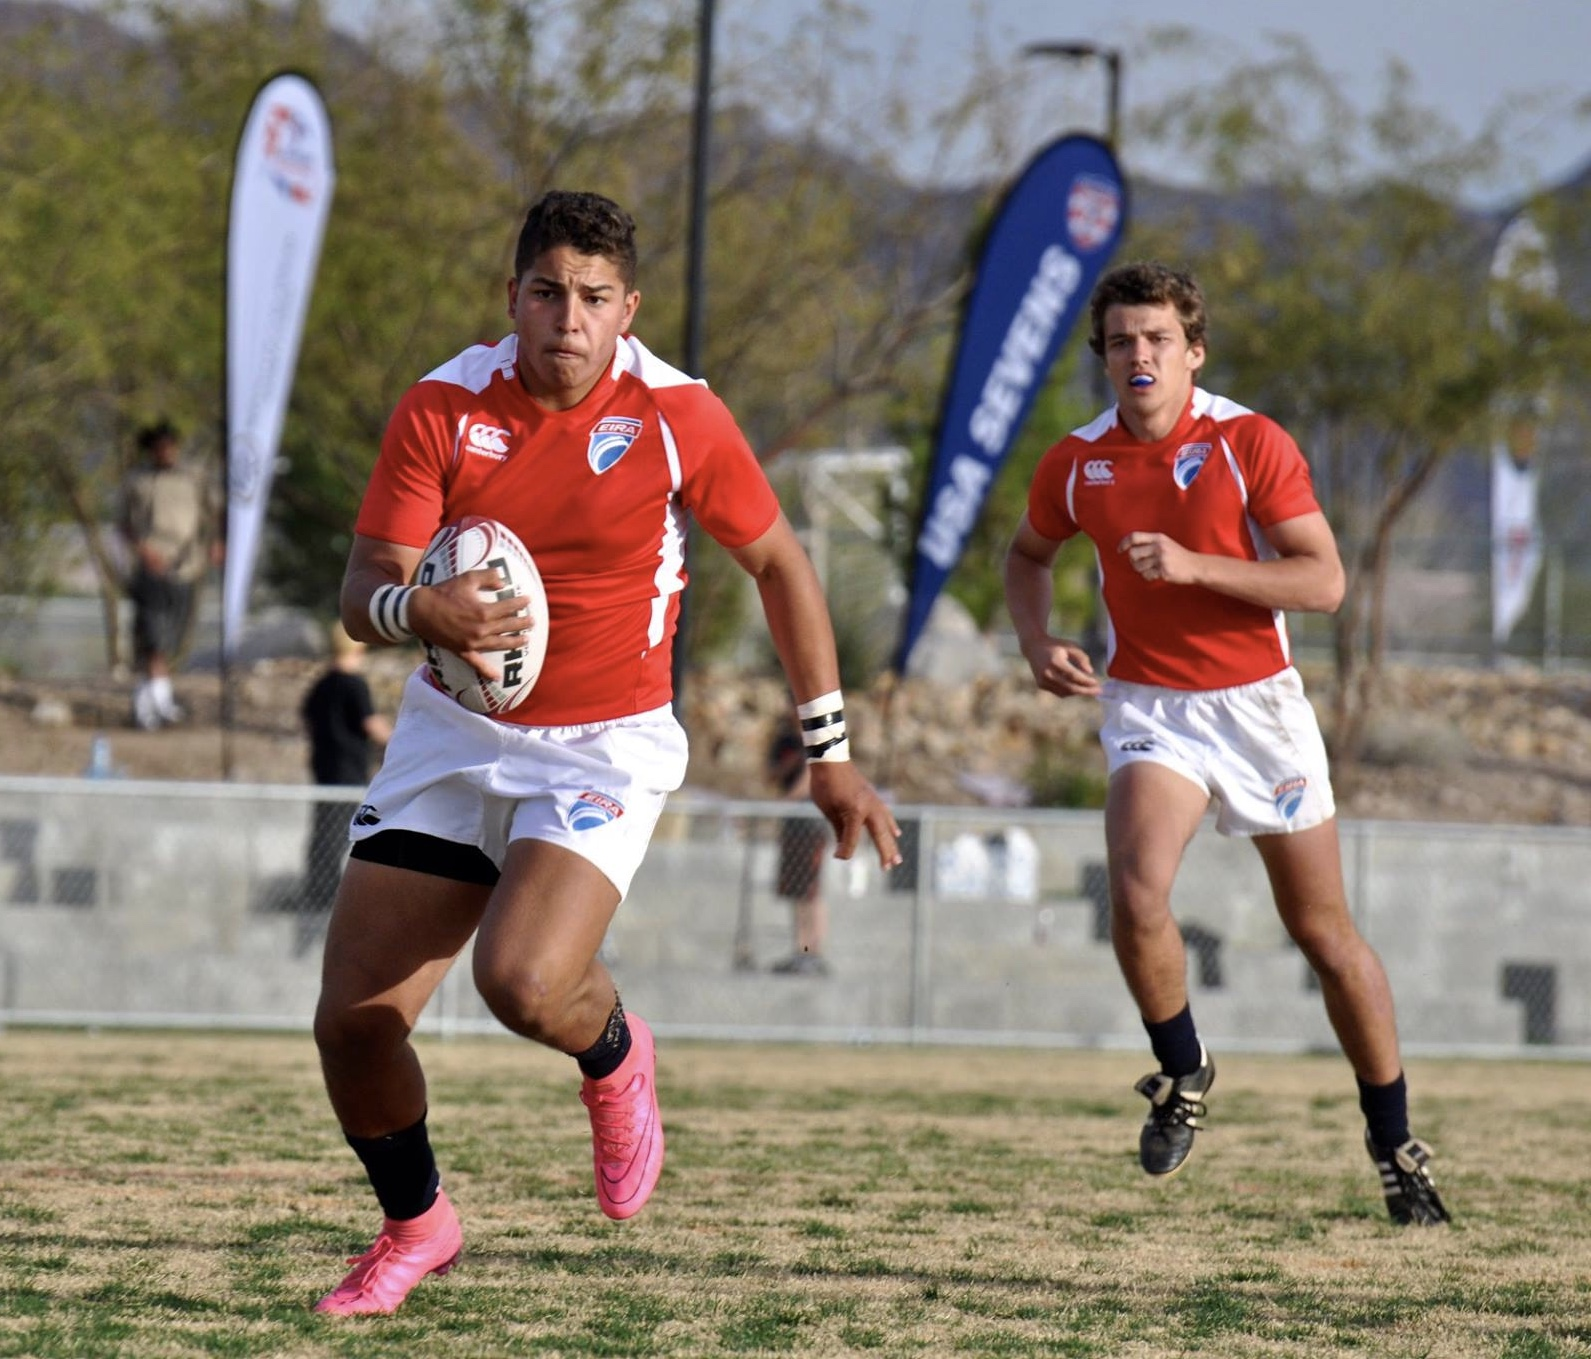 Quinn Perry and Christian Newby Eagle Impact Rugby Academy. Heide Newby photo.